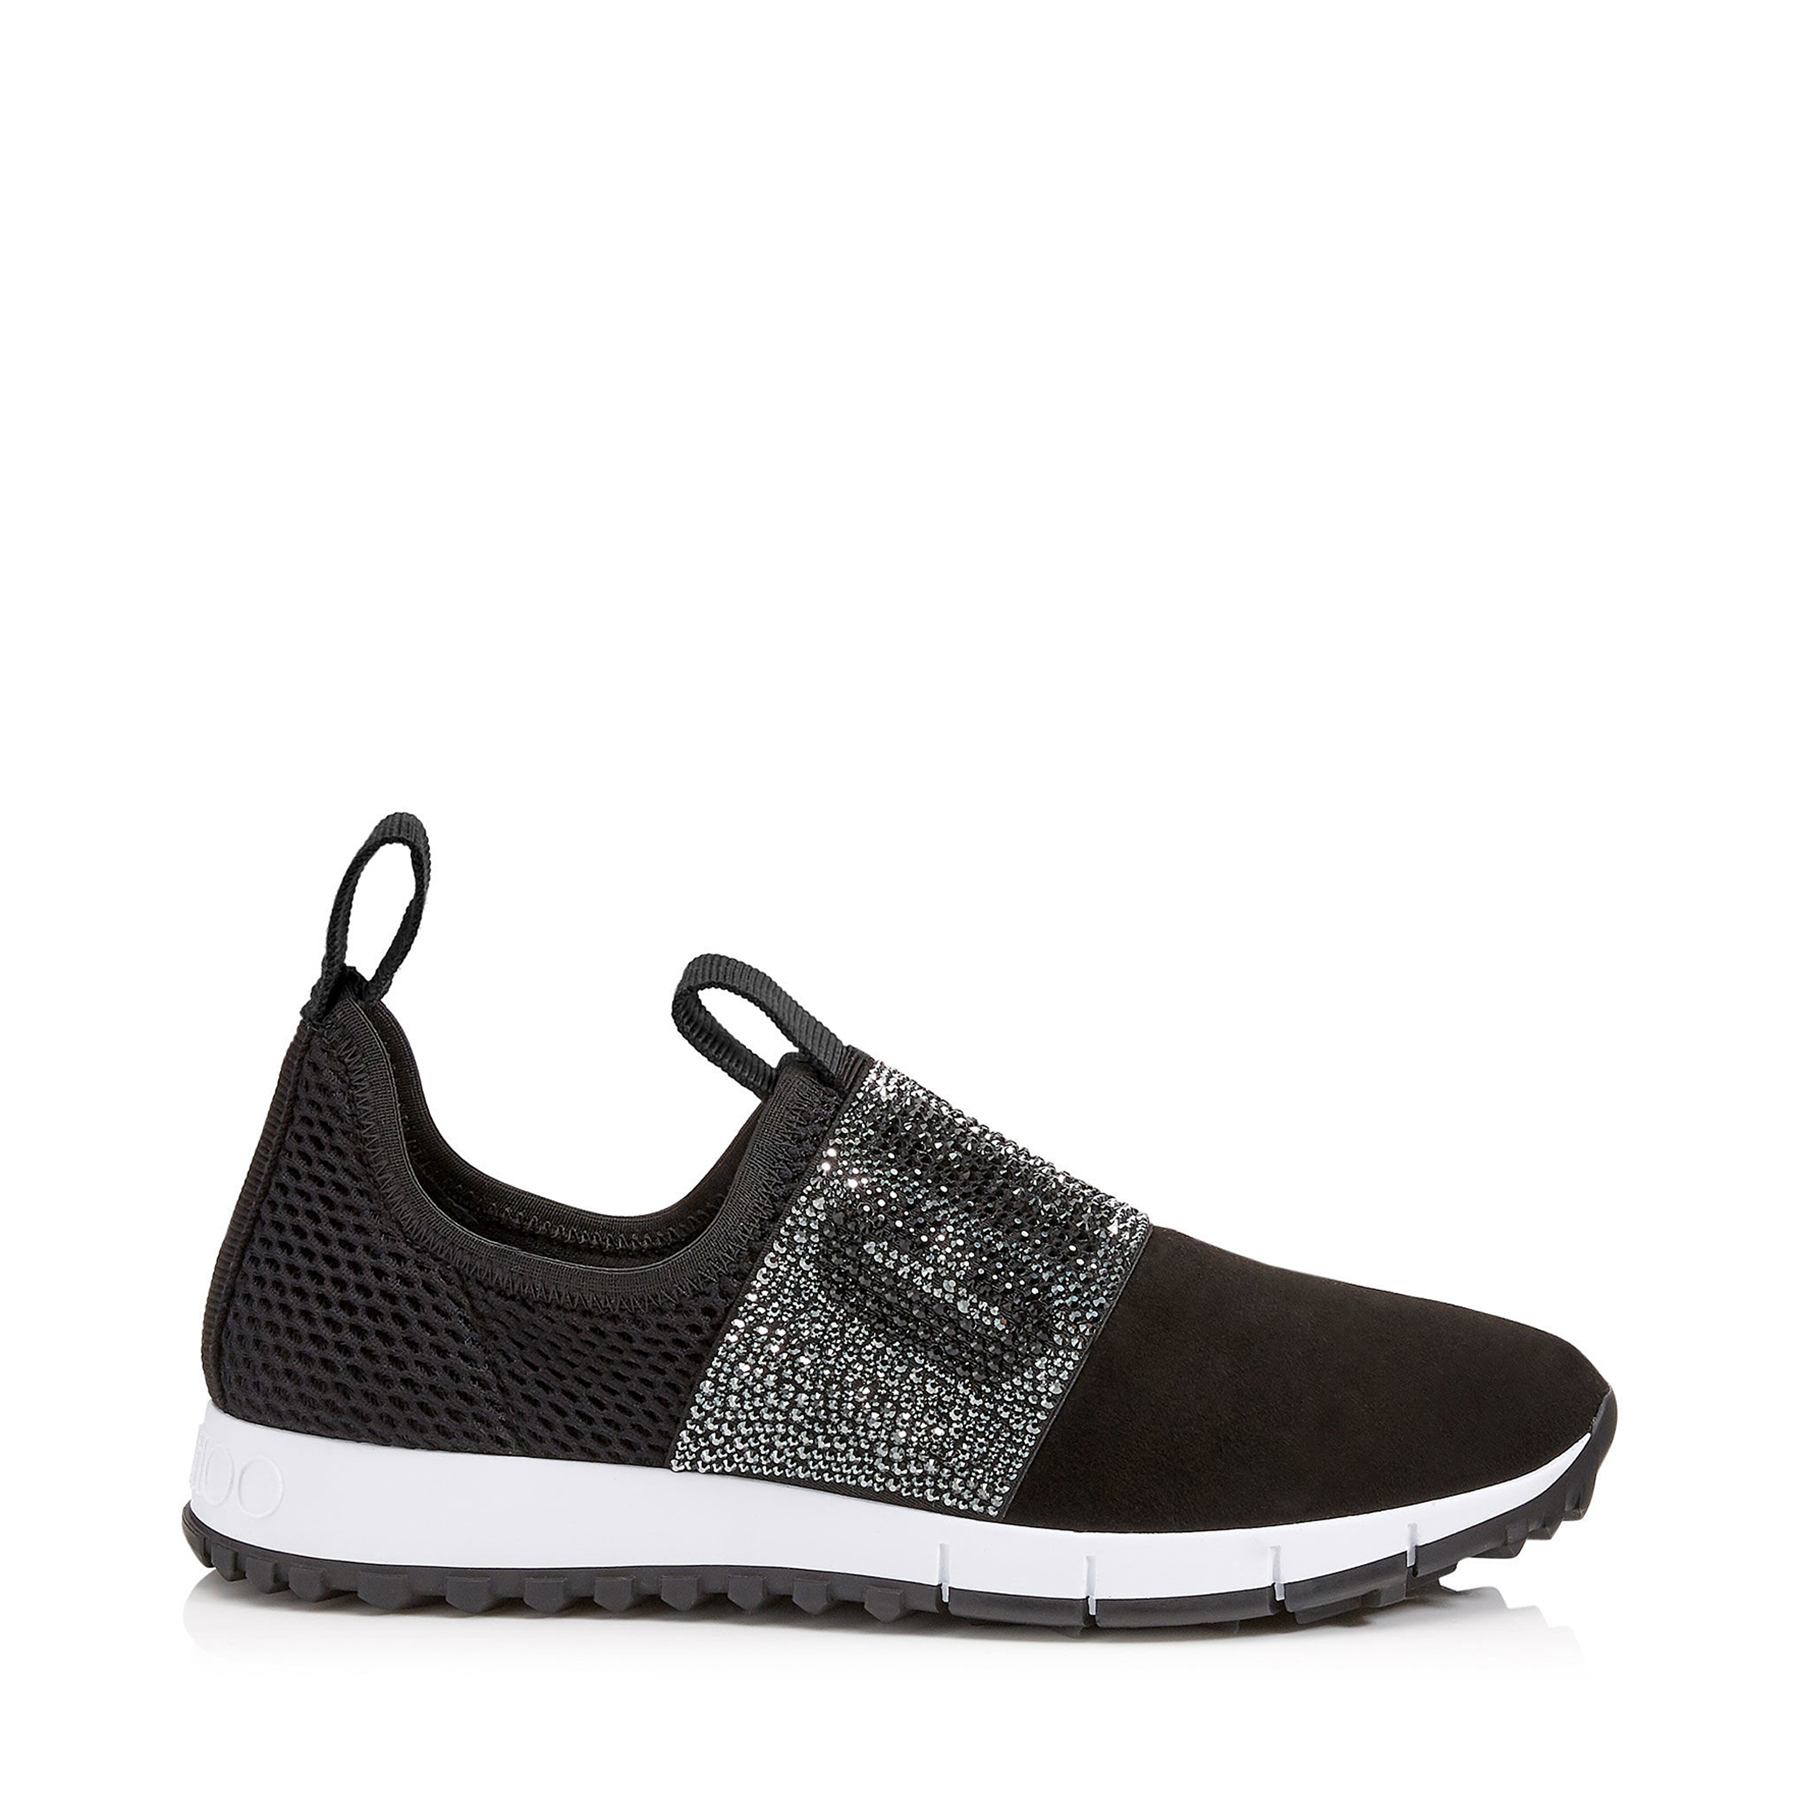 OAKLAND/F Black Mesh and Suede Trainers with Crystal Detailing by Jimmy Choo